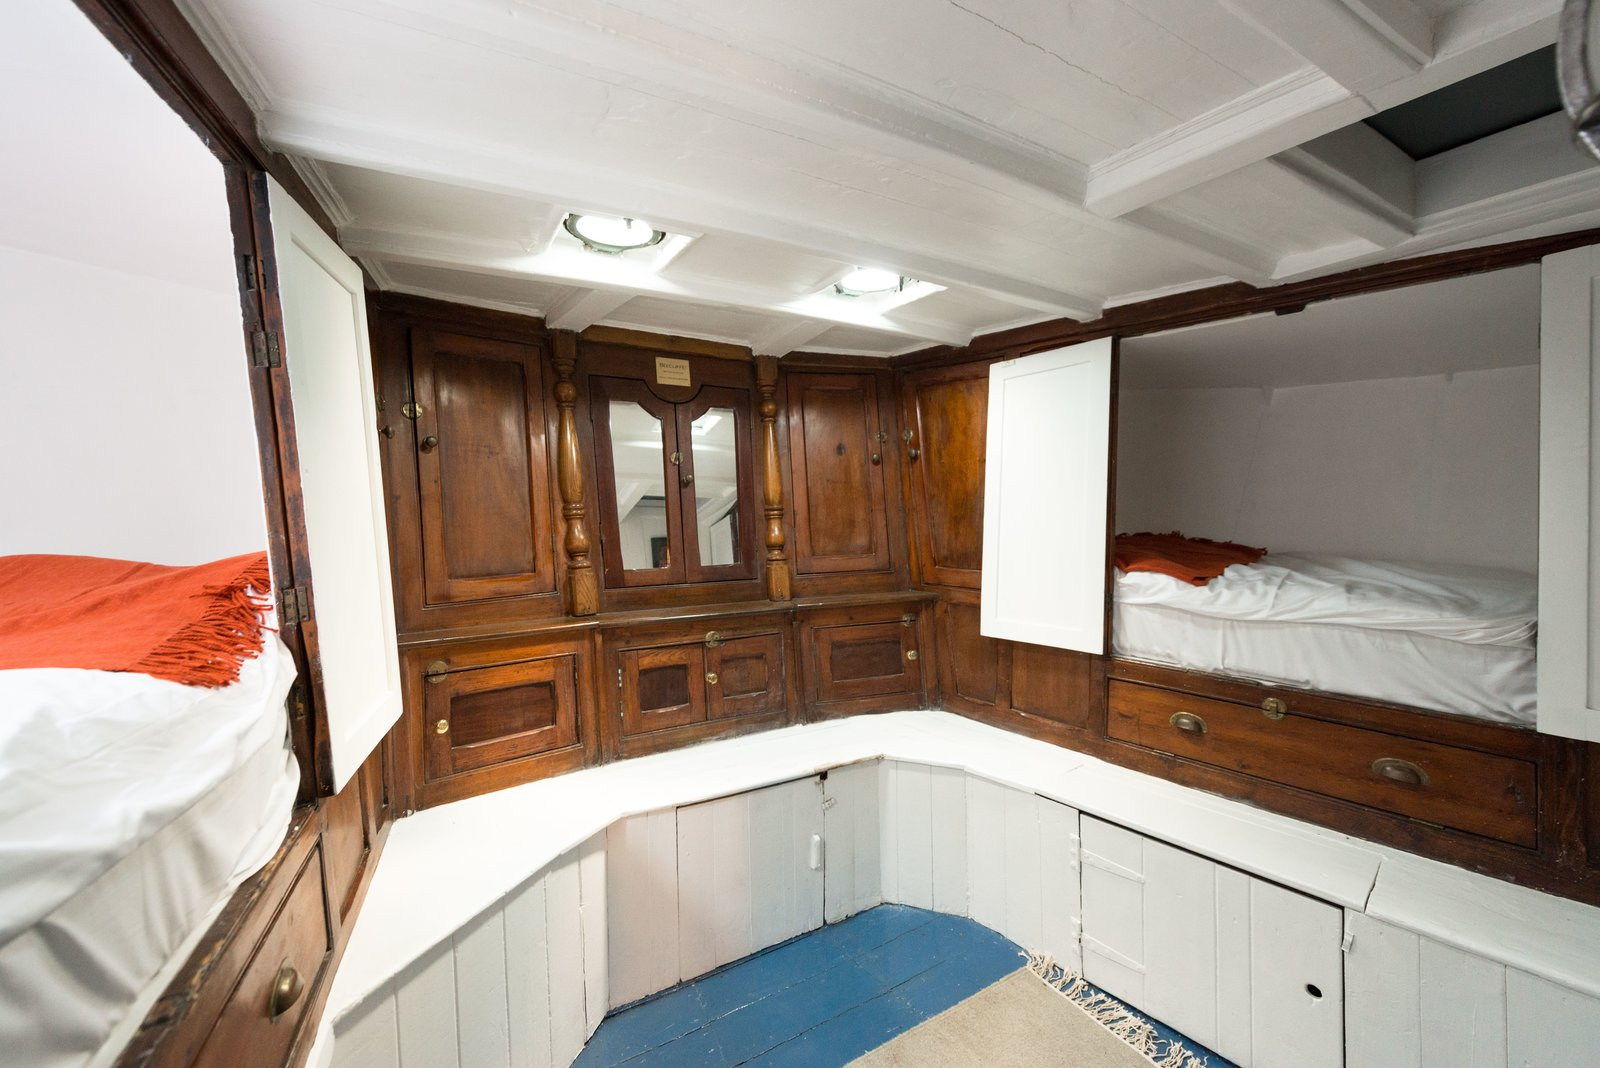 Bedroom, Storage, Ceiling Lighting, Bunks, and Rug Floor The bunk room provides built in sleeping quarters within the original woodwork.  Photo 6 of 9 in Londoners Can Live in This Scandinavian-Inspired, Converted Barge For $424K